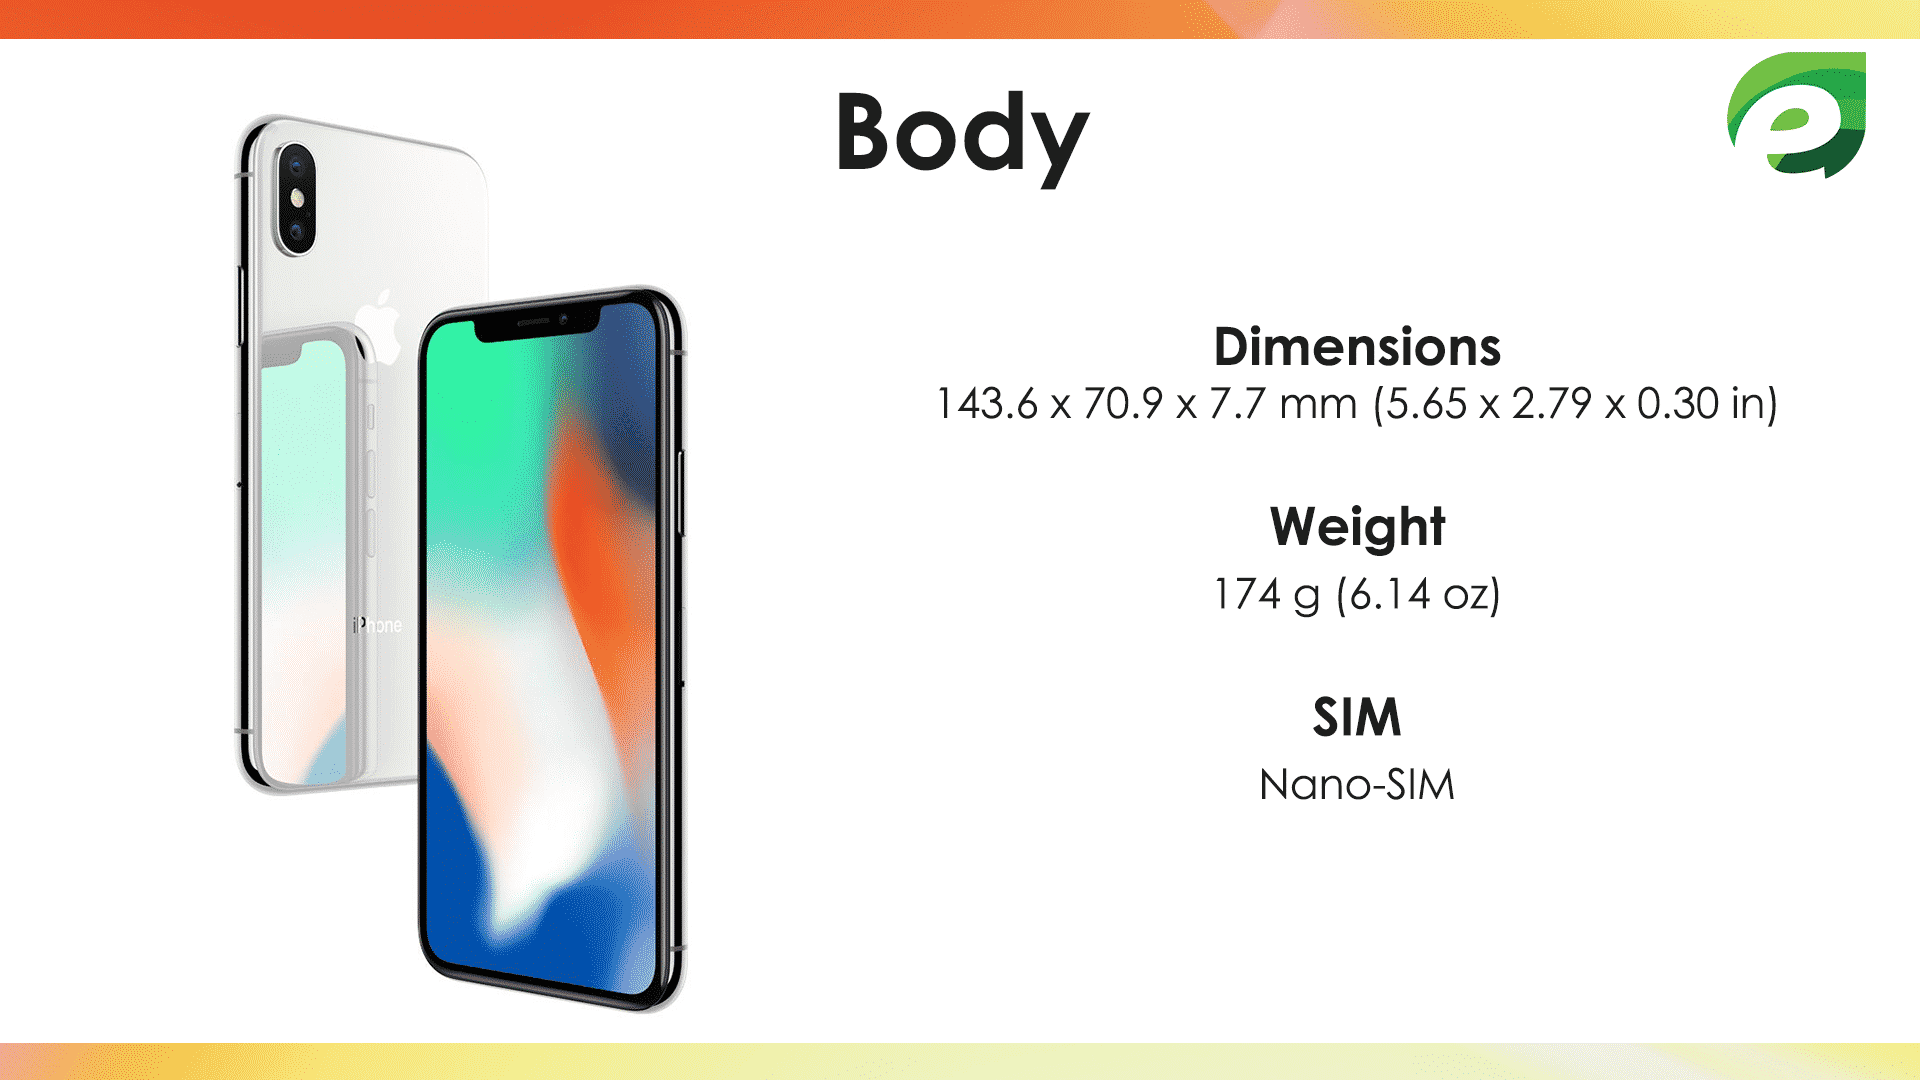 iphone x- body